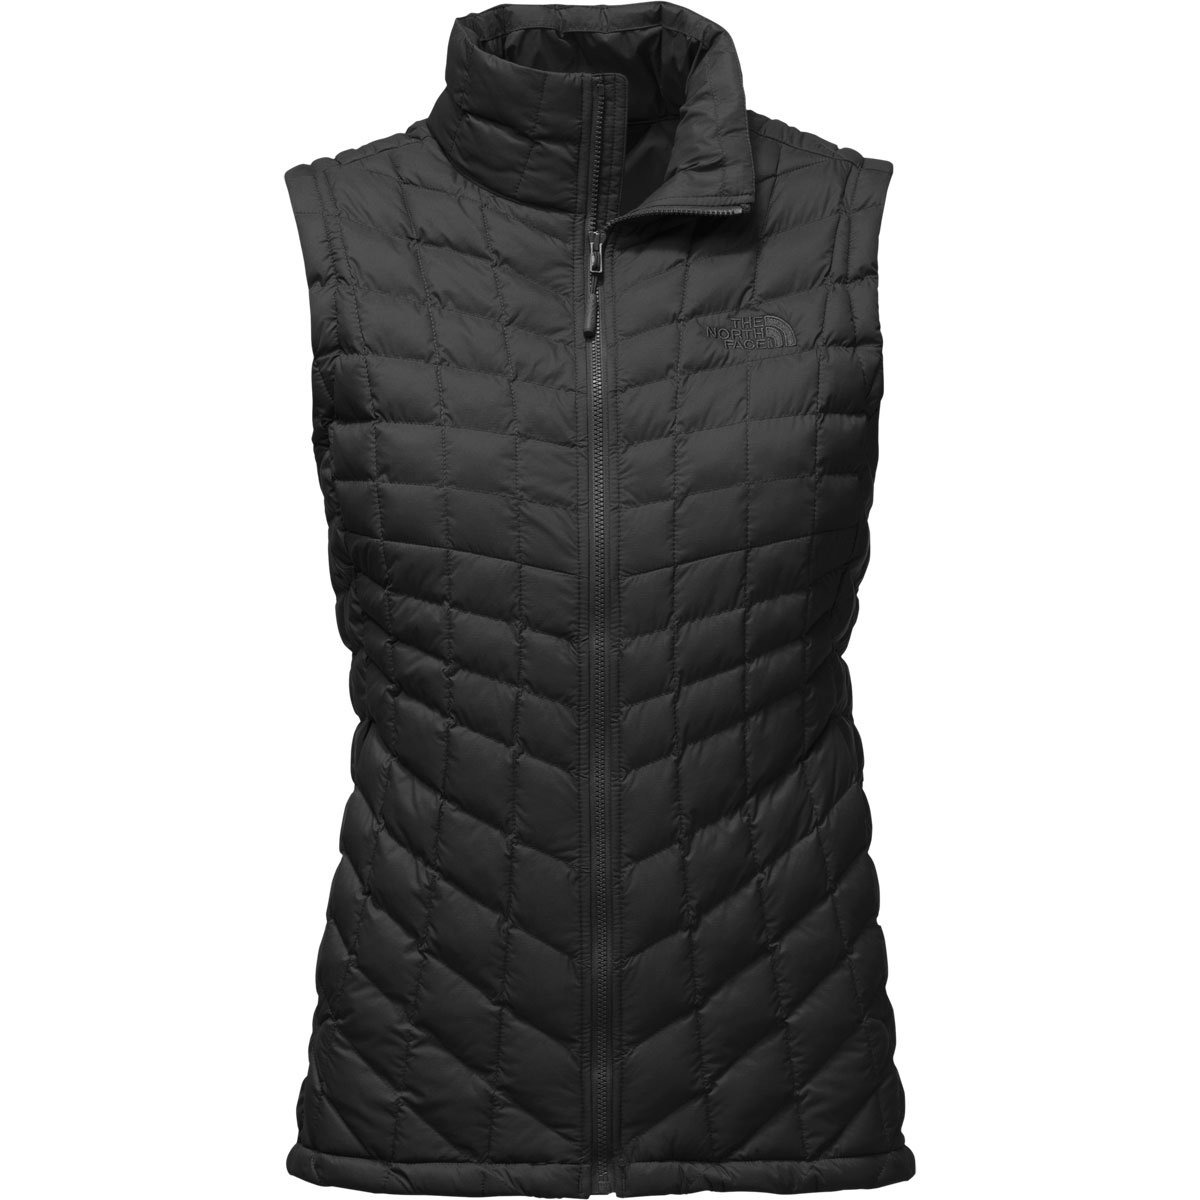 The North Face Womens Thermoball Vest TNF Black Matte - M